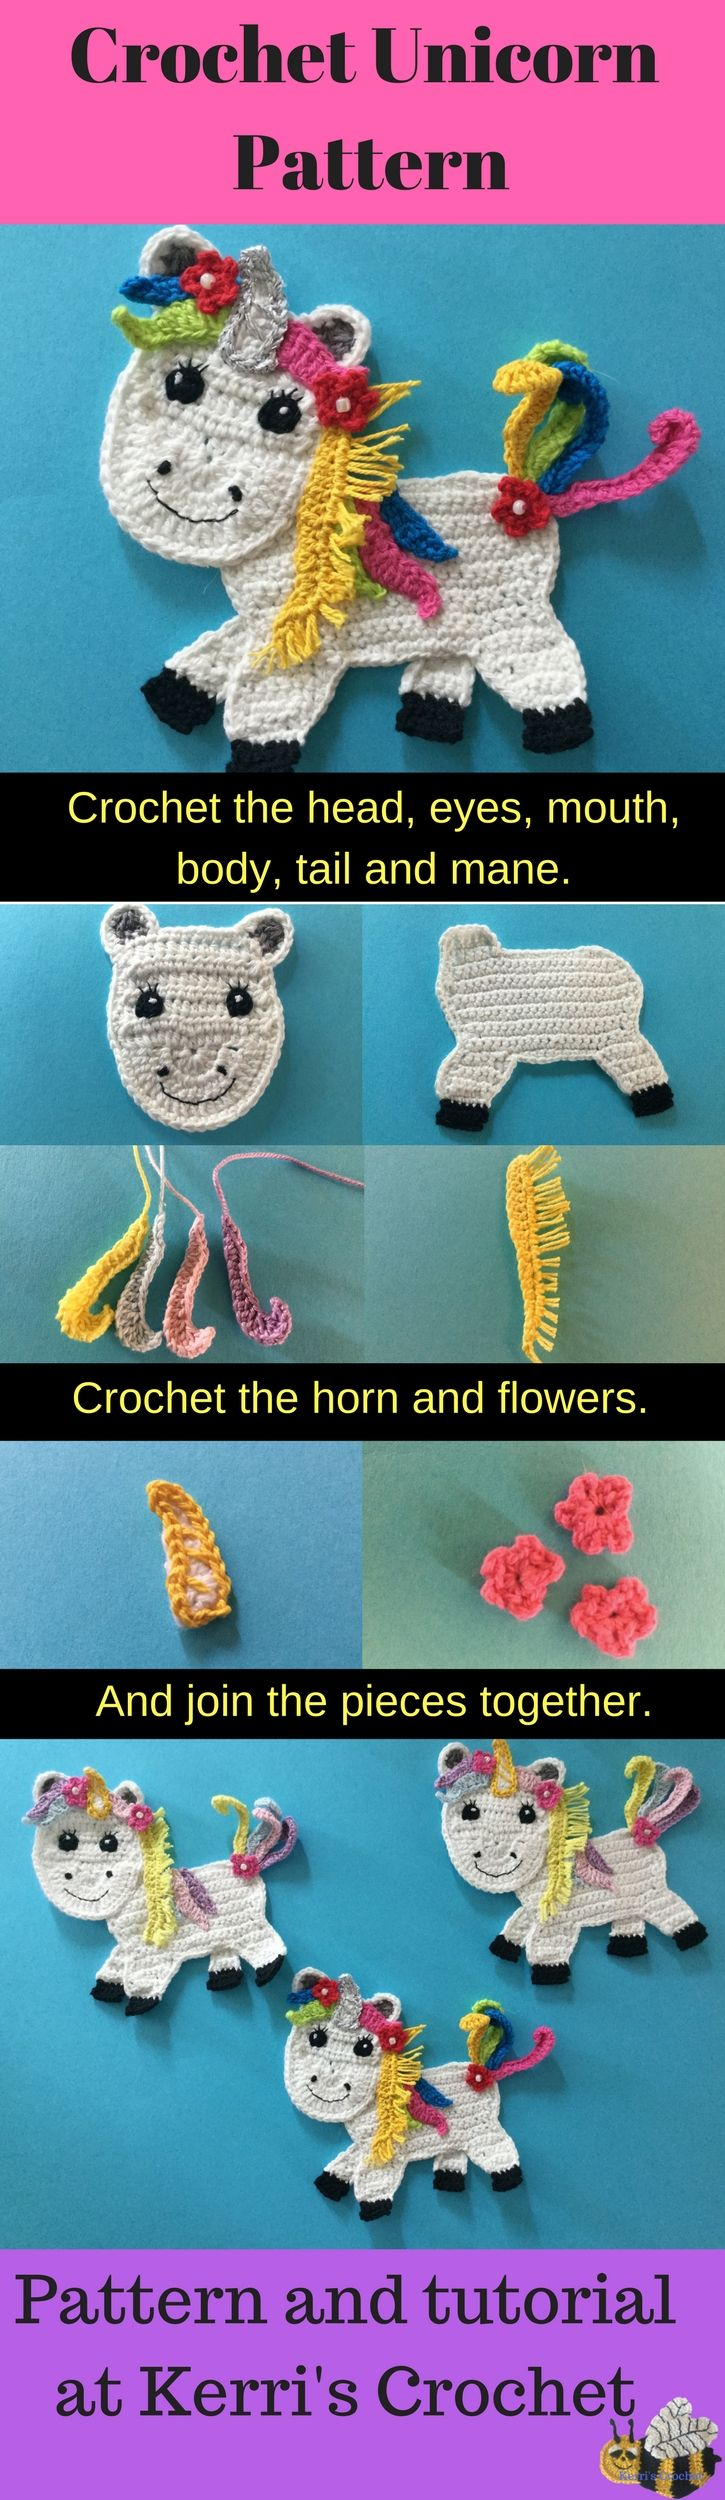 Get the free crochet pattern and video tutorial for this cute unicorn at Kerri's Crochet.